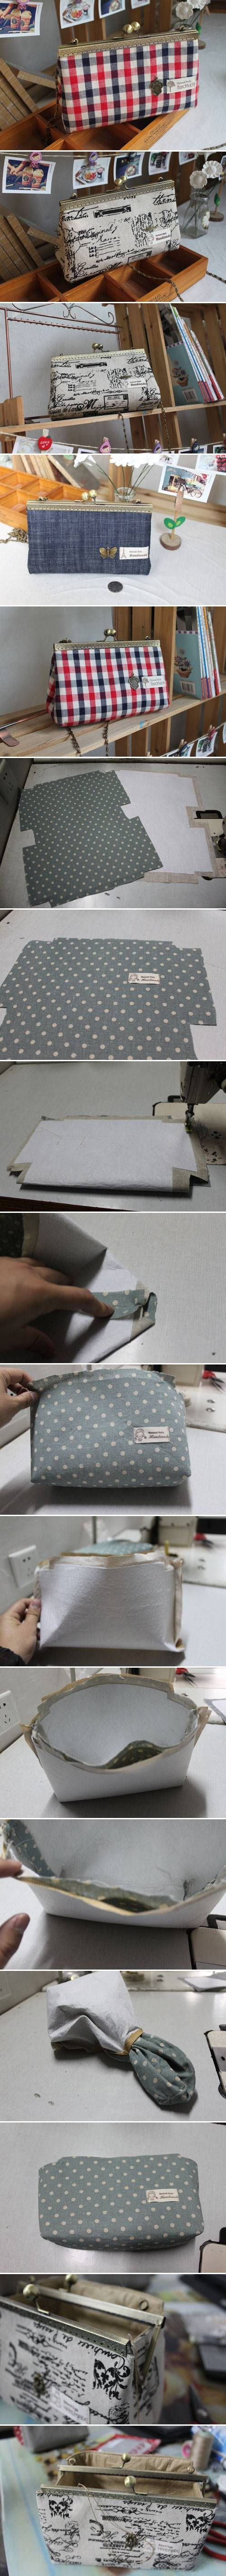 DIY Simple Handbag DIY Projects | UsefulDIY.com Follow Us on Facebook --> https://www.facebook.com/UsefulDiy